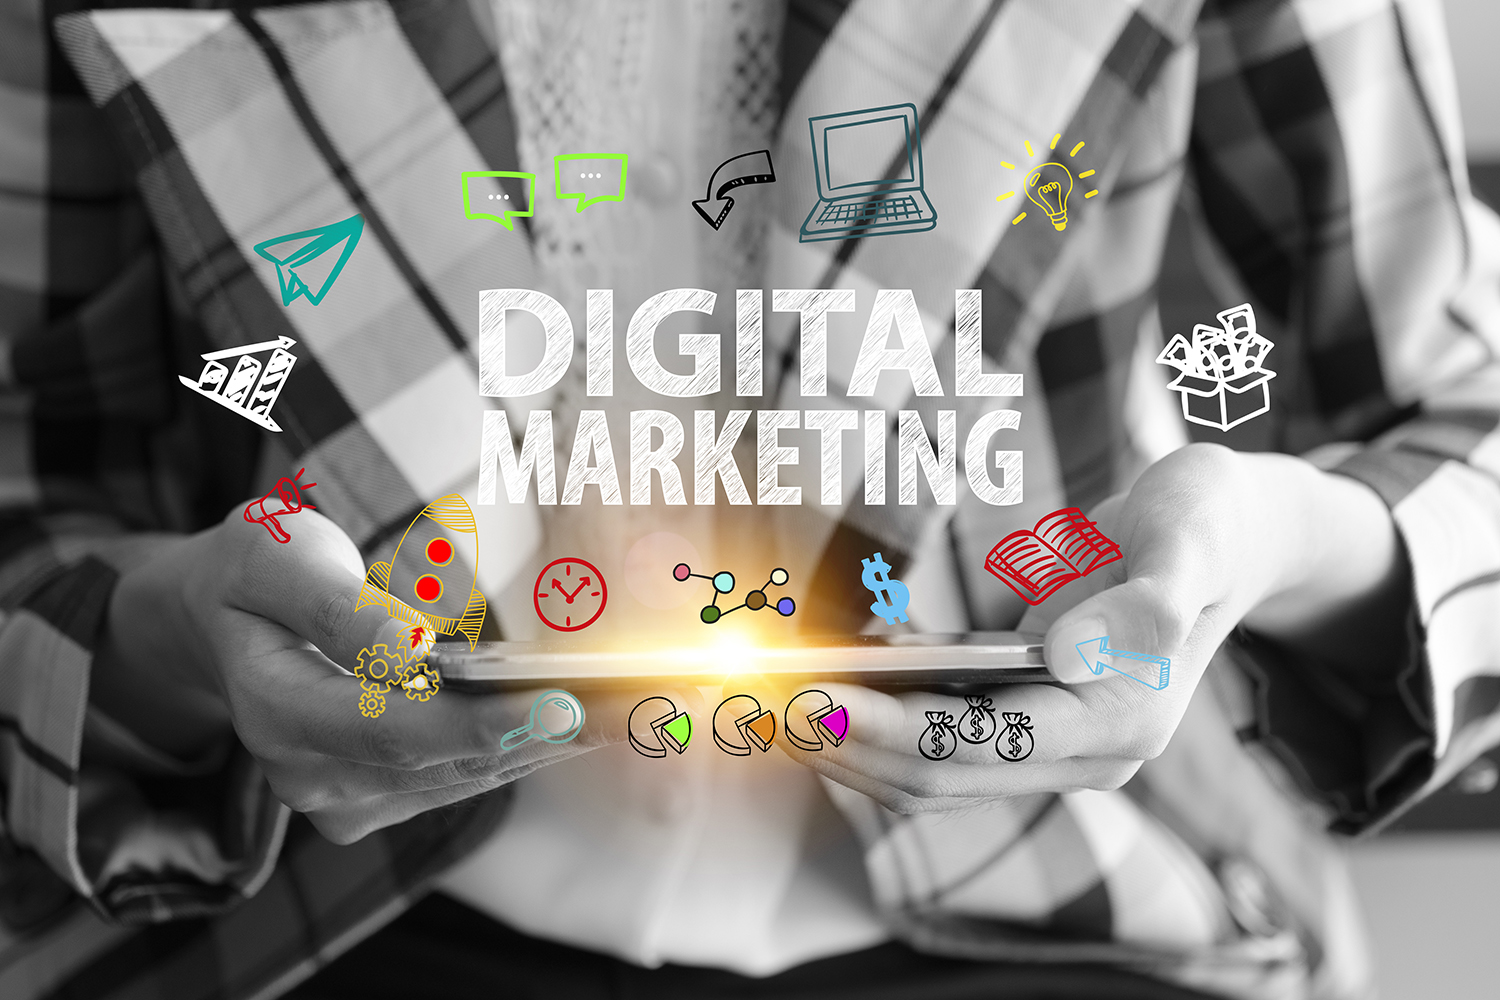 Image of a person holding an ipad with the text 'Digital Marketing' abovce and icons illustrating.